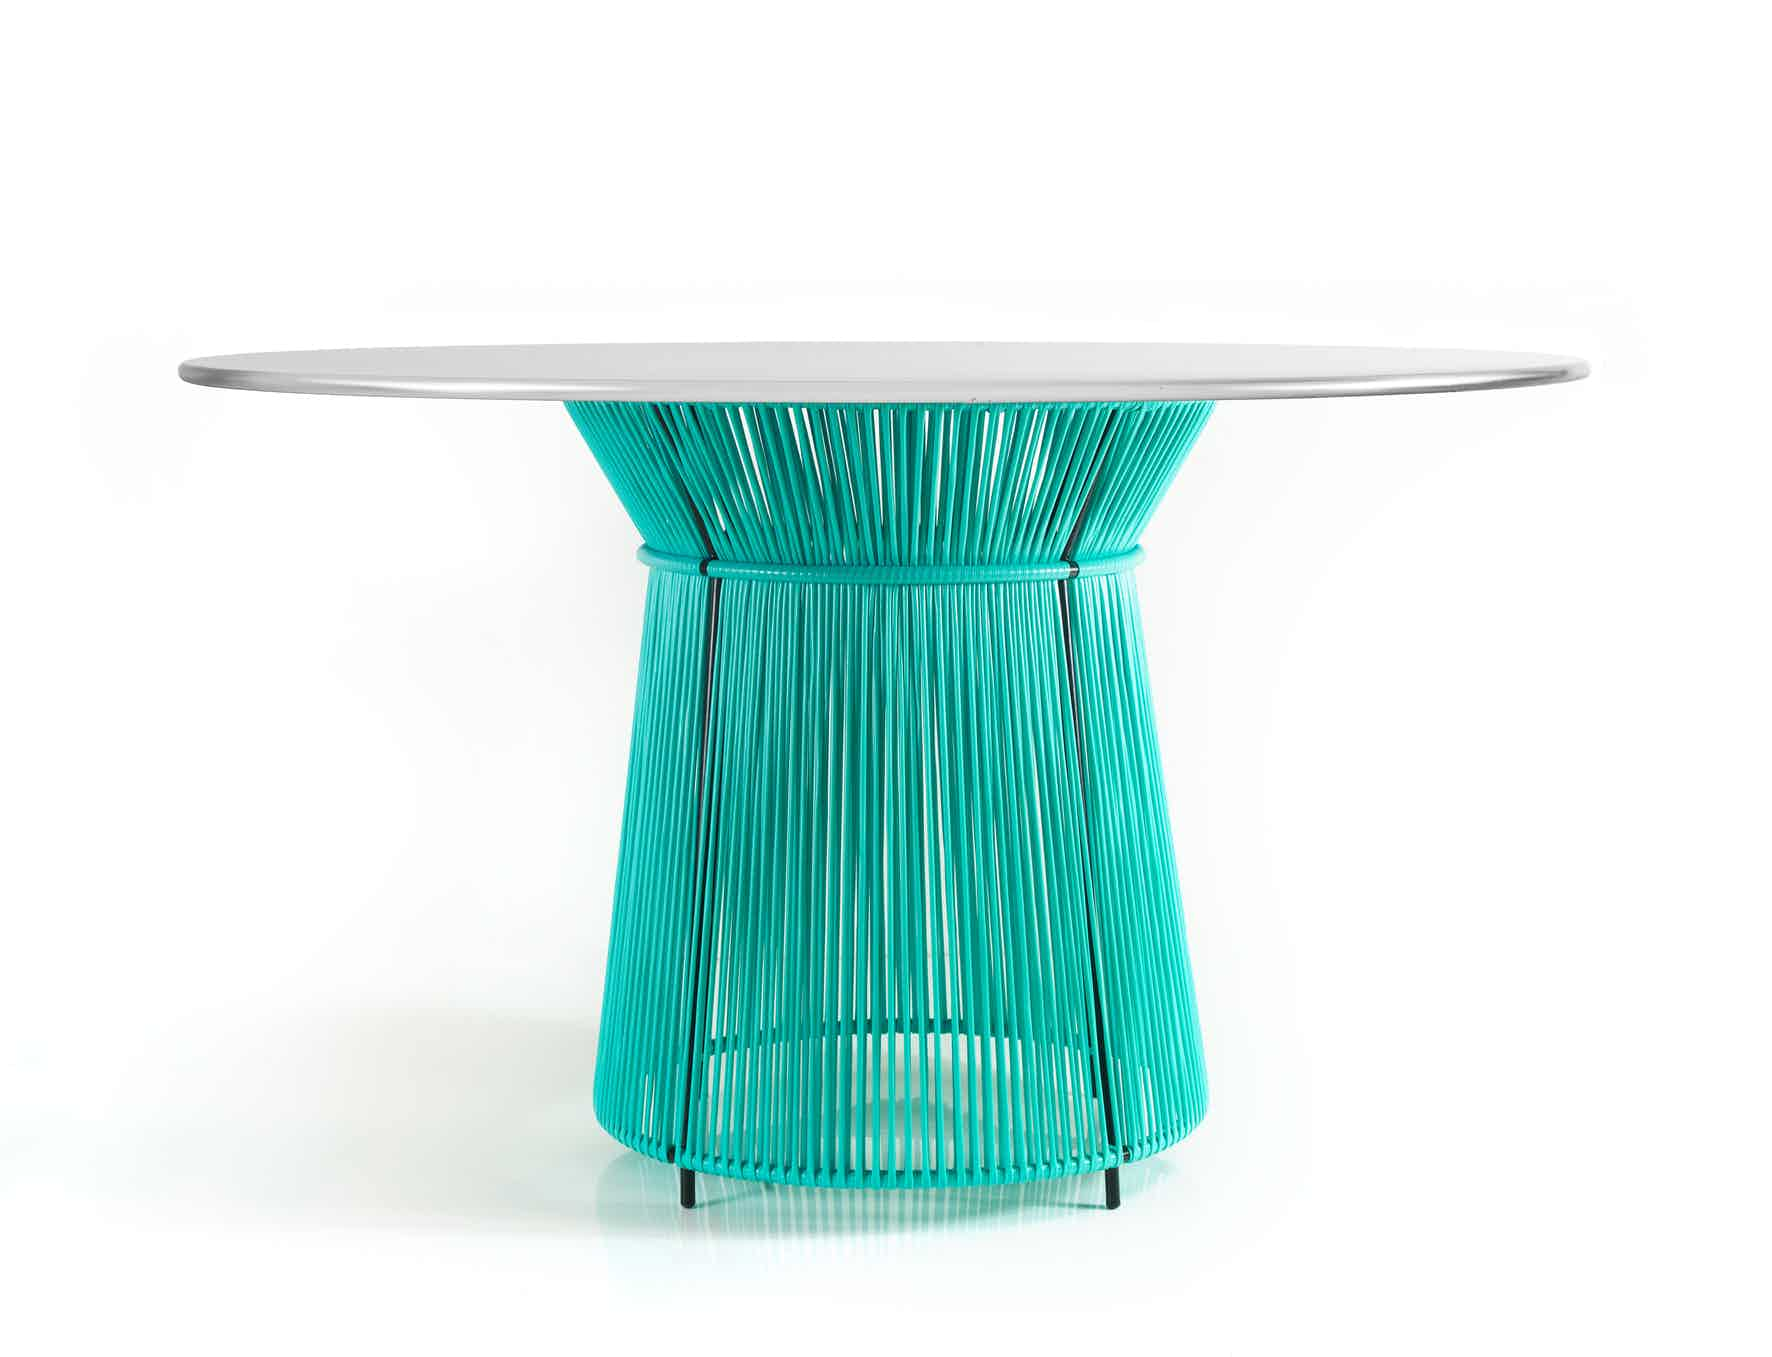 Ames furniture design caribe dining table teal haute living